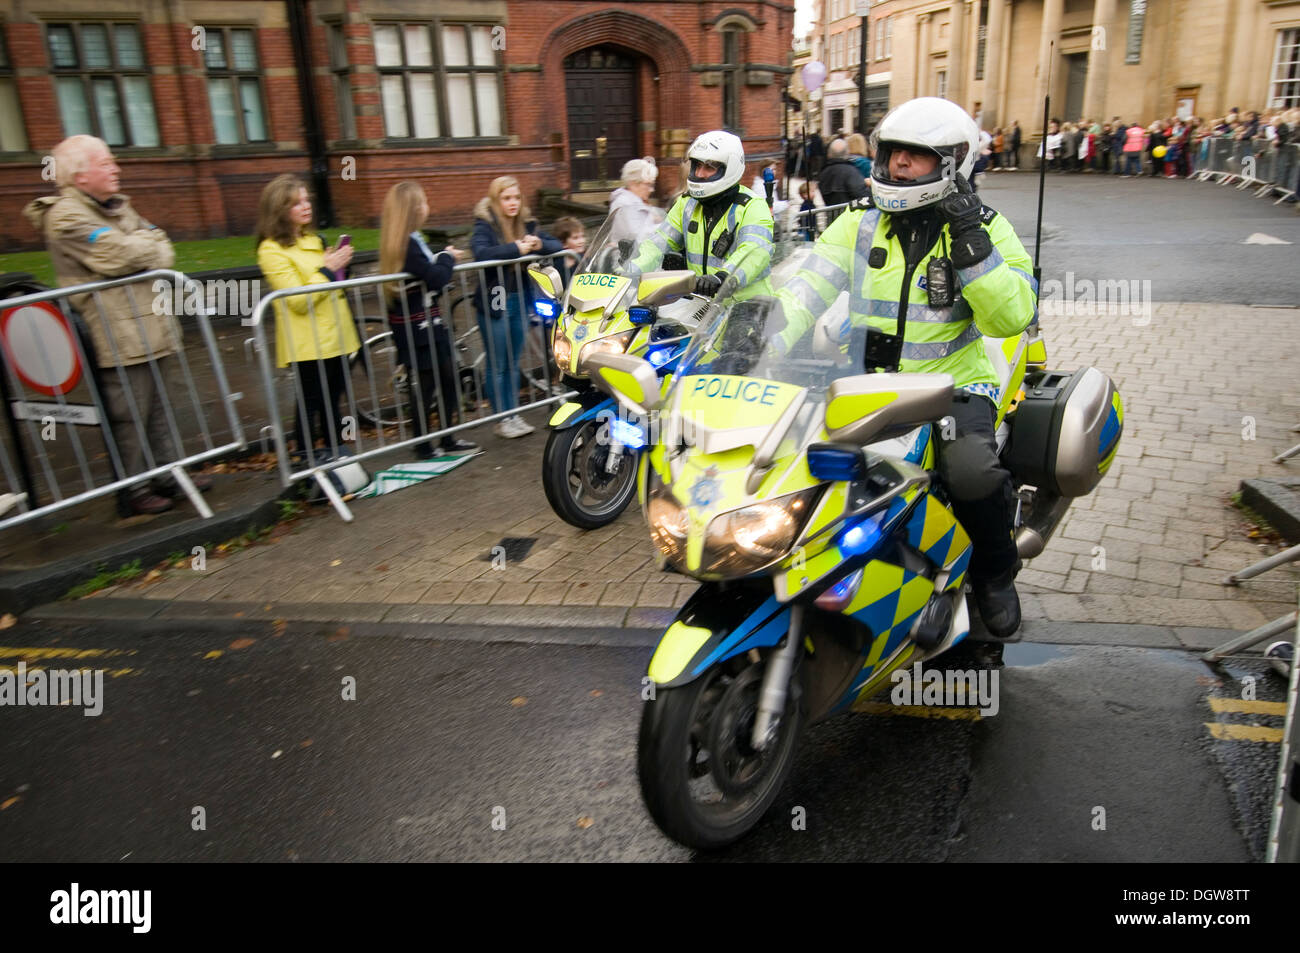 police motorbike motorcycle motor bike cycles man policeman riding rider riders cycle bikes Yamaha out riders outriders escort e - Stock Image